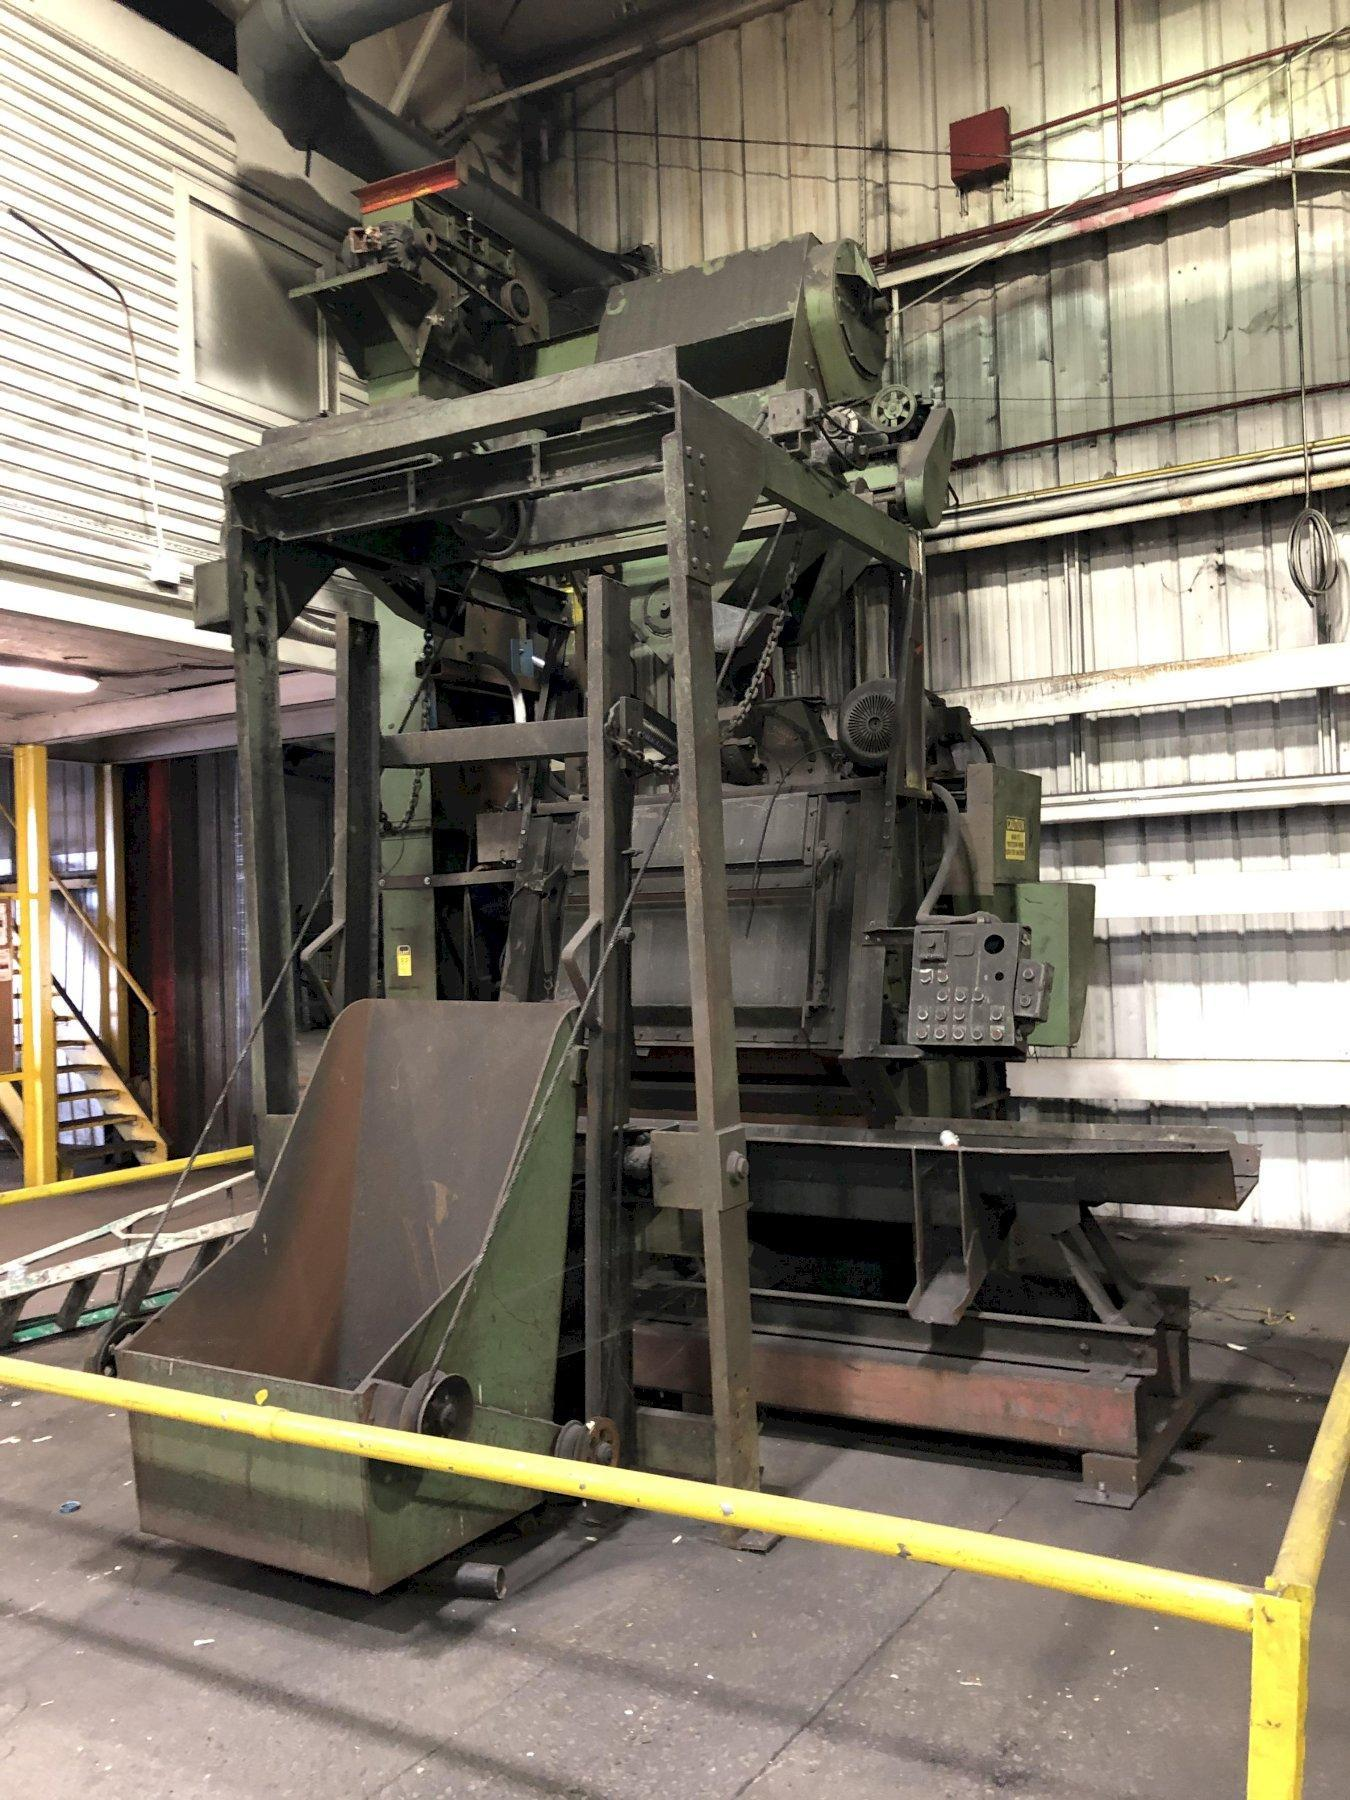 """WHEELABRATOR MODEL 7 CU FT TUMBLAST CLEANING MACHINE S/N A121524 WITH FLOOR LOADER, 24"""" X APPROX. 11' DISCHARGE OSCILLATING CONVEYOR WITH DRIVE"""